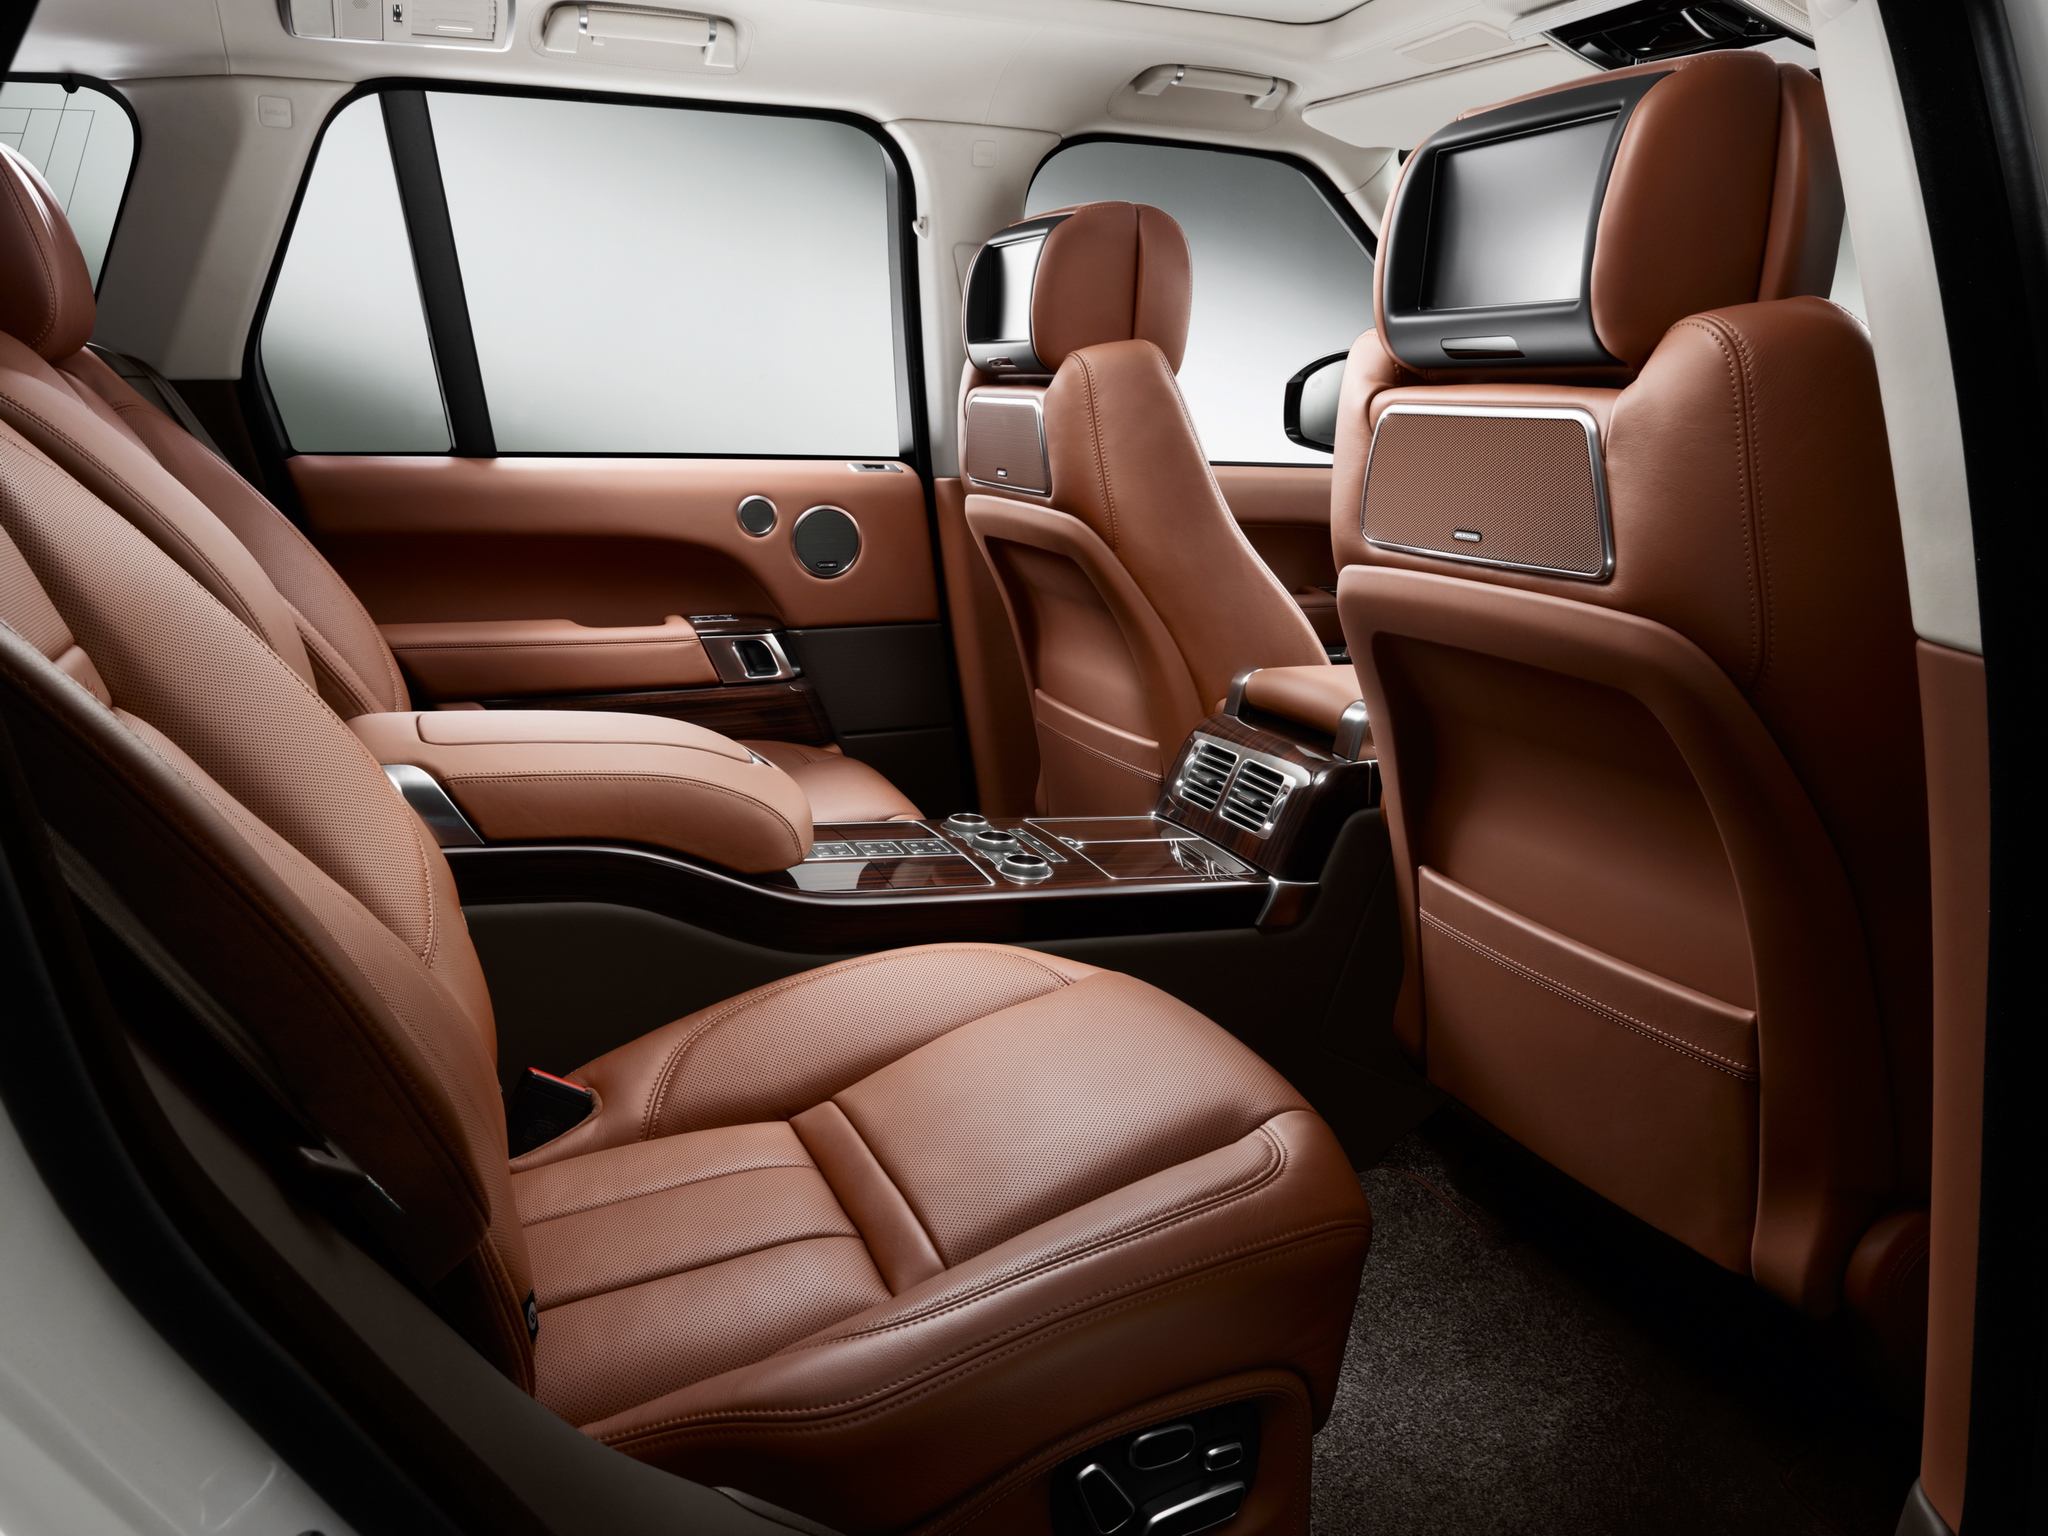 2014 range rover autobiography black l405 suv luxury interior g wallpaper 2048x1536 167408. Black Bedroom Furniture Sets. Home Design Ideas